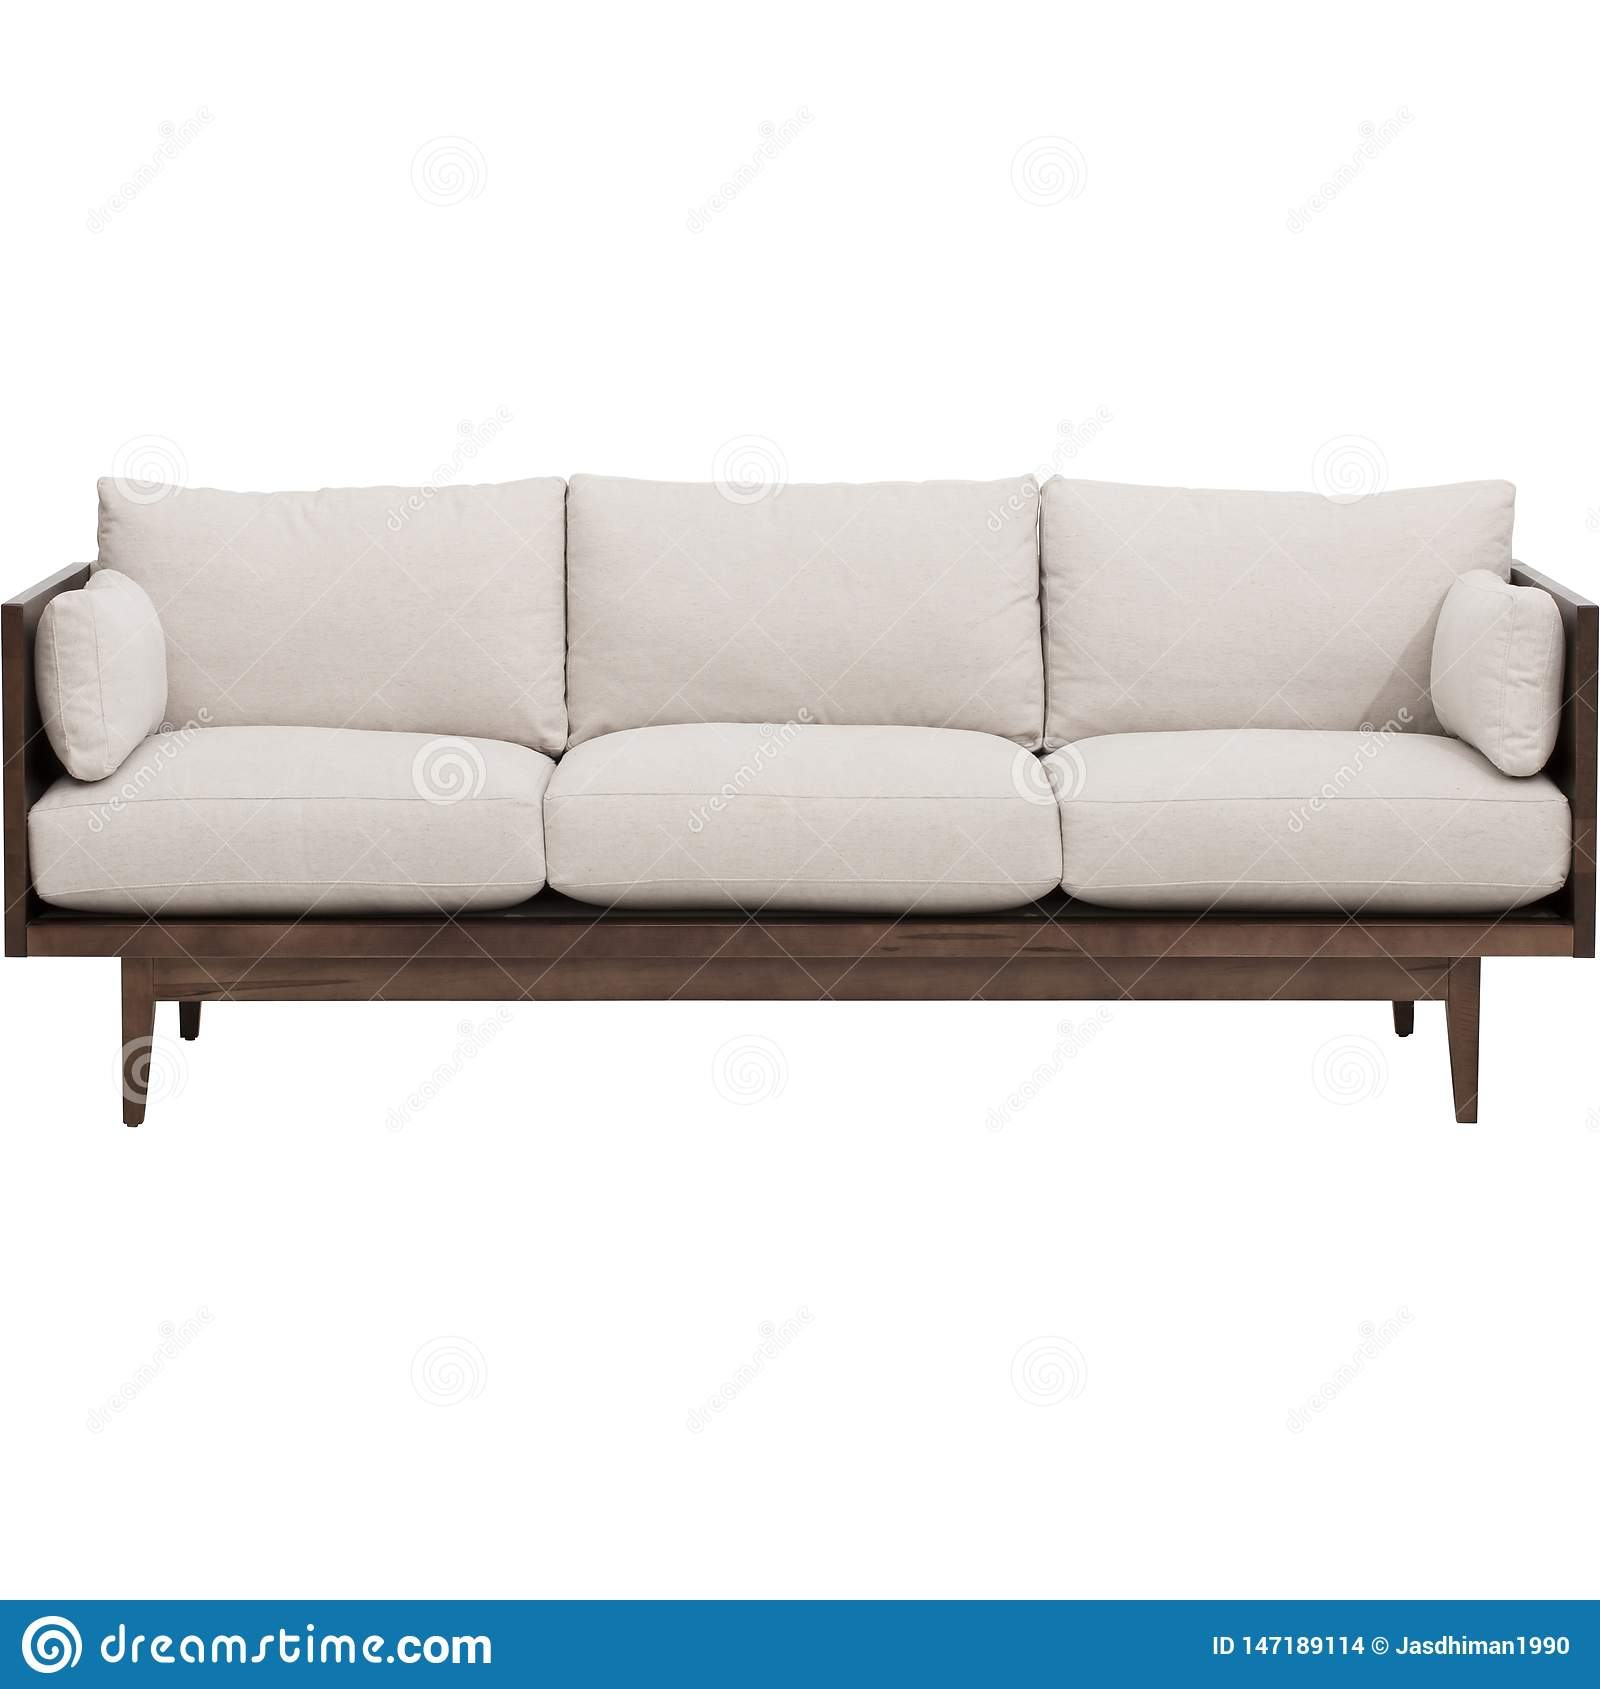 Modern living-room interior with white couch near empty beige wall. - Stock image